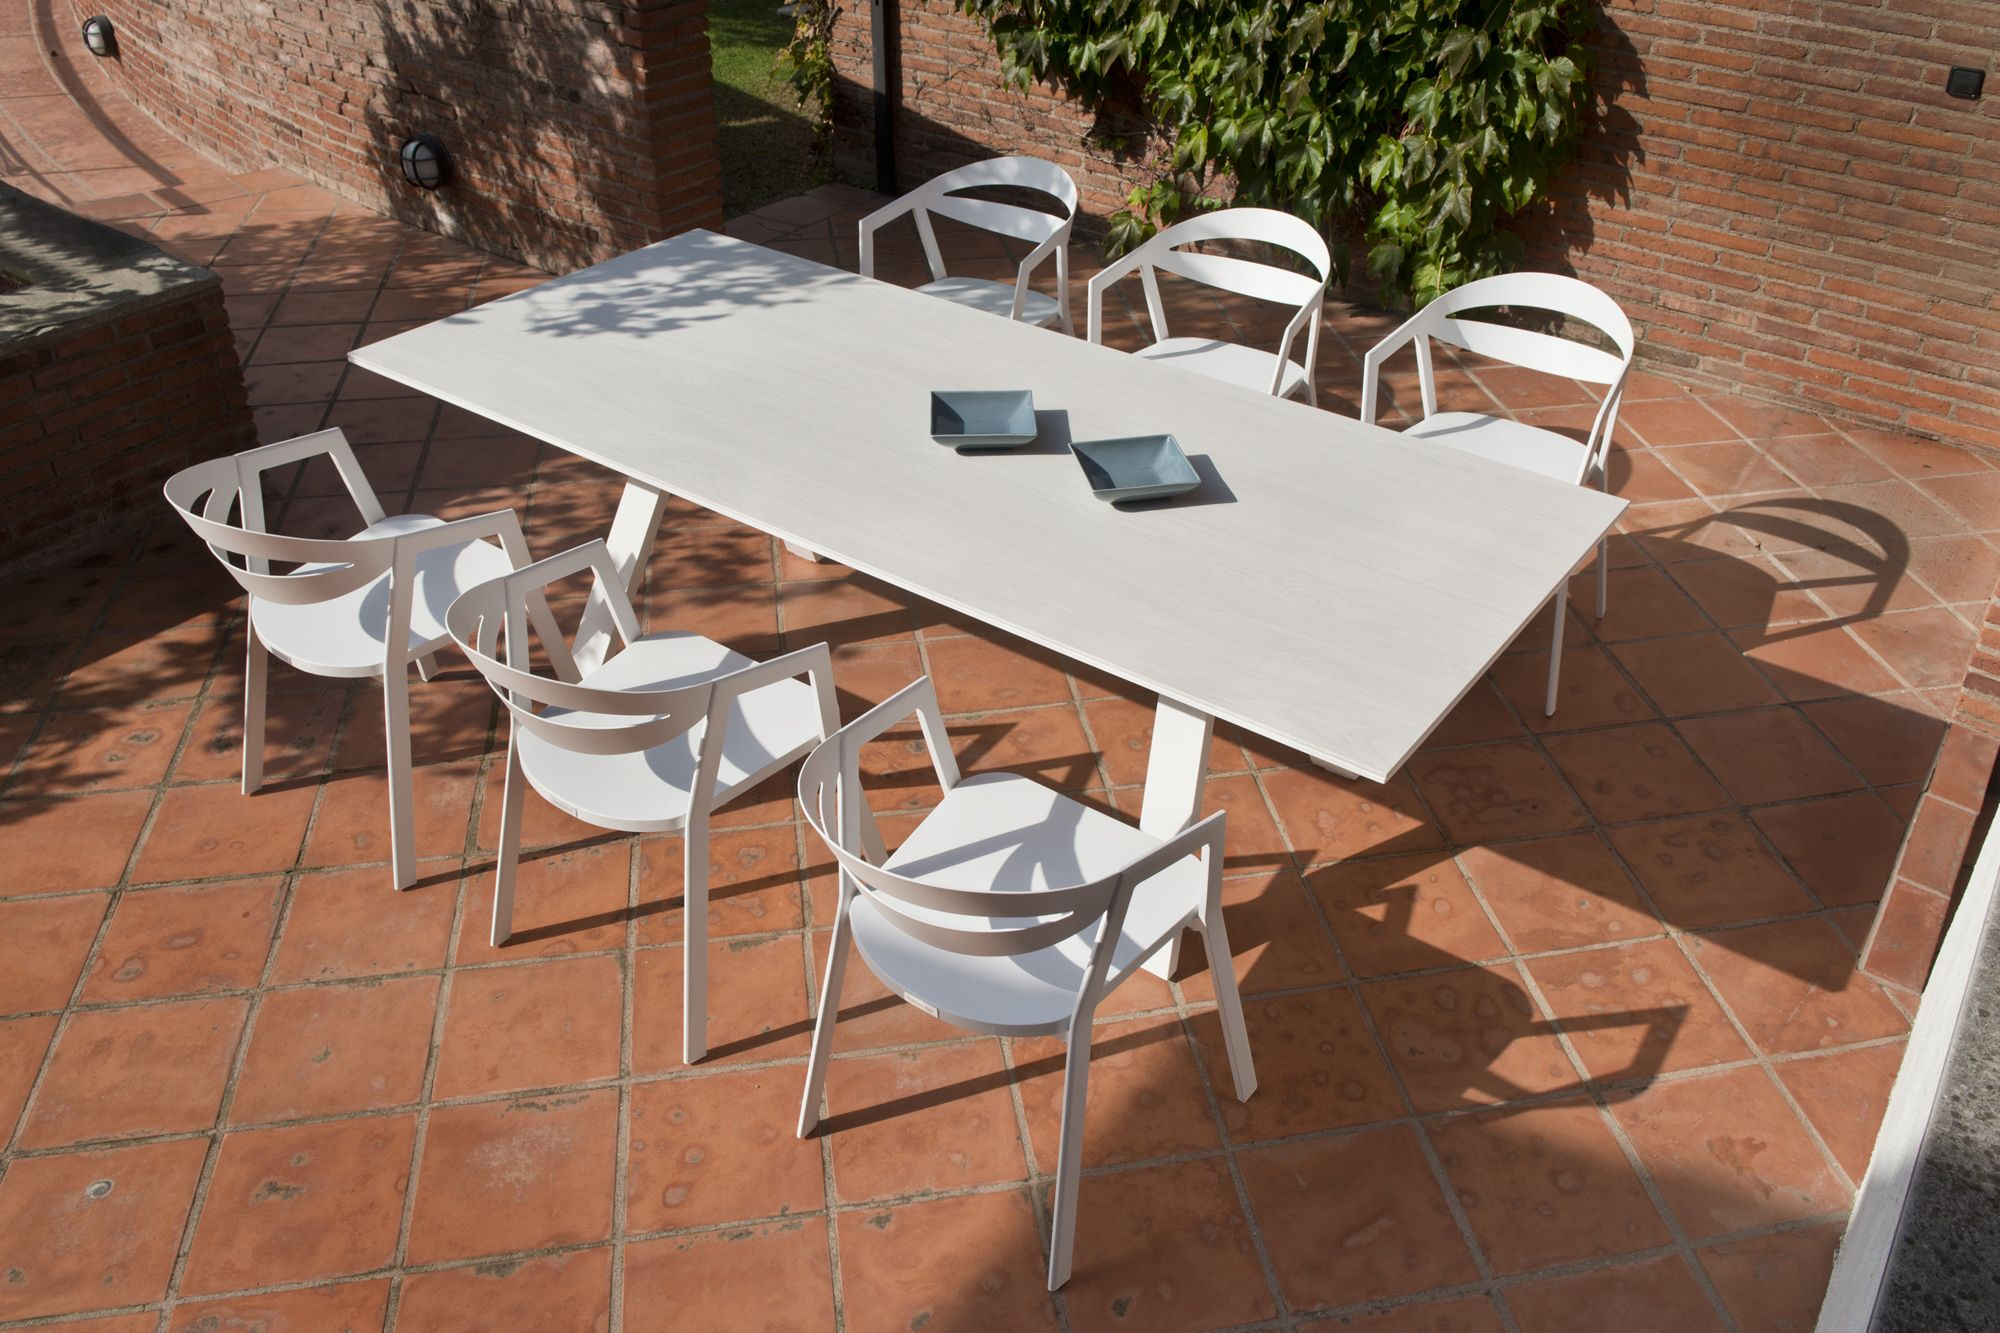 garden furniture retails and wholesales in france and spain gardenart furniture offers a range of - Garden Furniture Offers